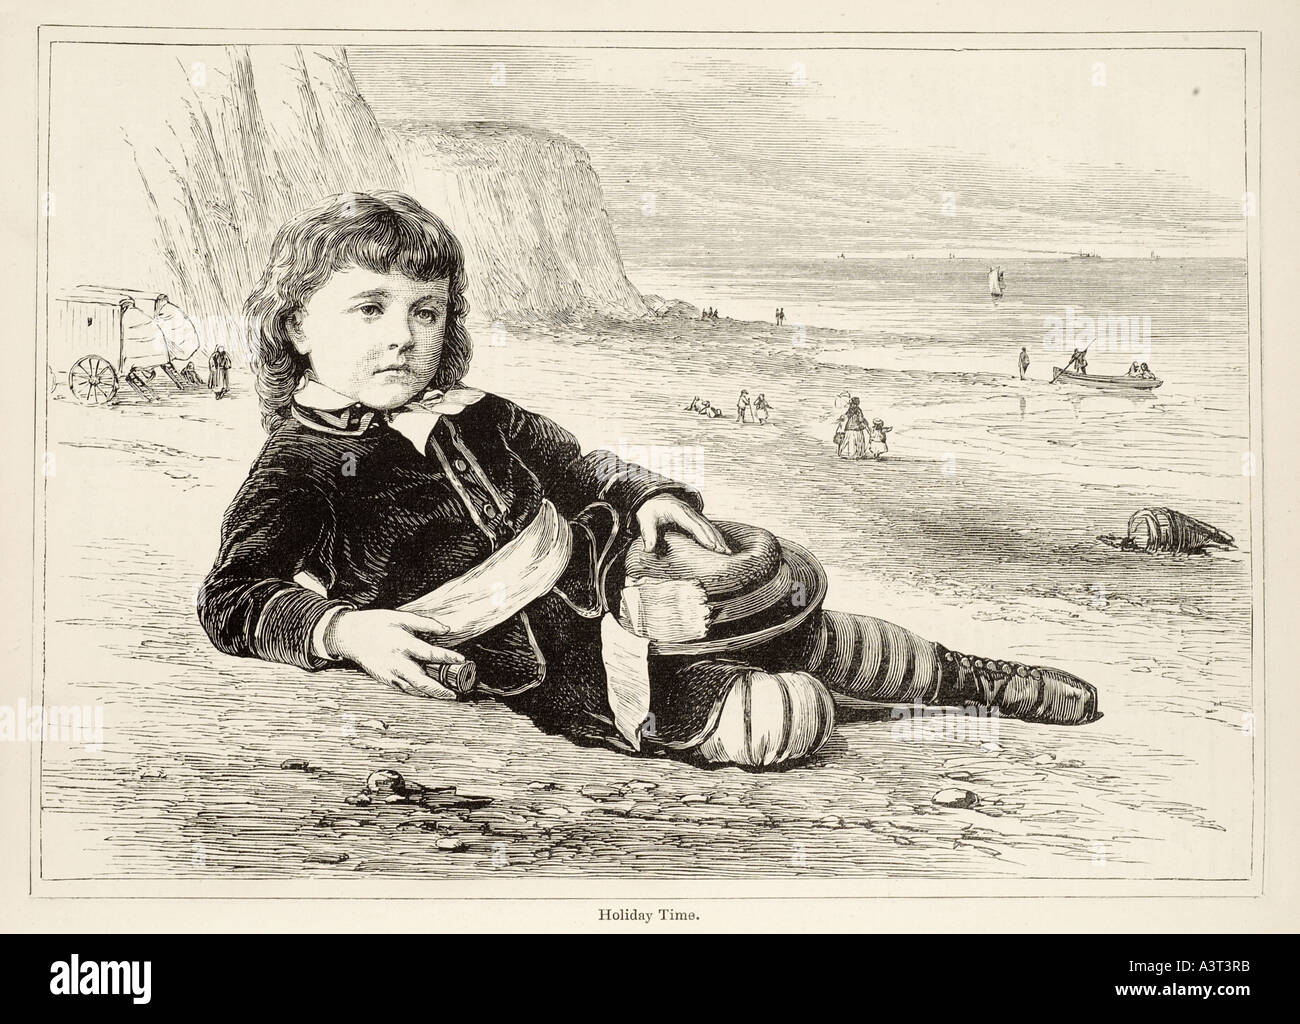 holiday time Young boy male vaction break beach sand shore sea side seaside south coast cliff travel pose curly hair pretty pron - Stock Image